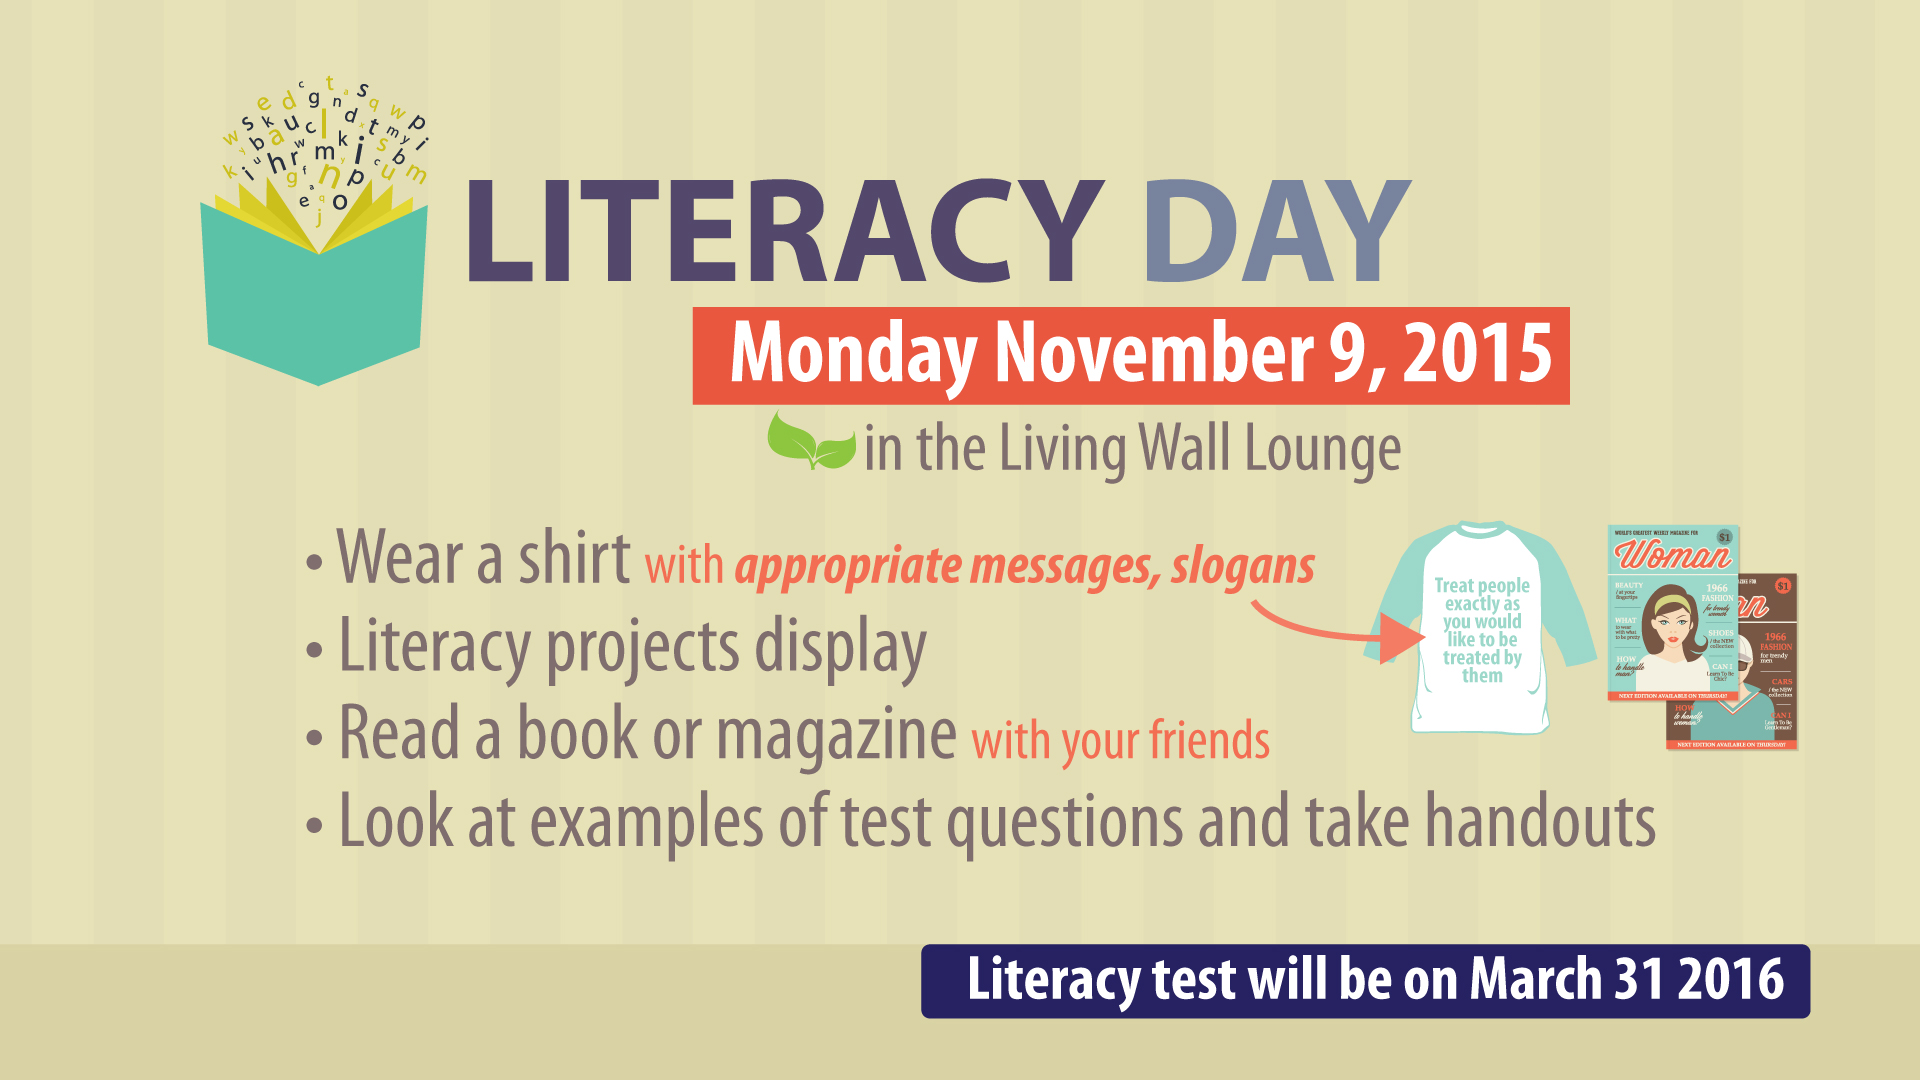 world literacy day essay An essay on world computer literacy day for children, kids and students given here english, hindi, tamil, telugu, bengali, marathi, malayalam, assamese and more.